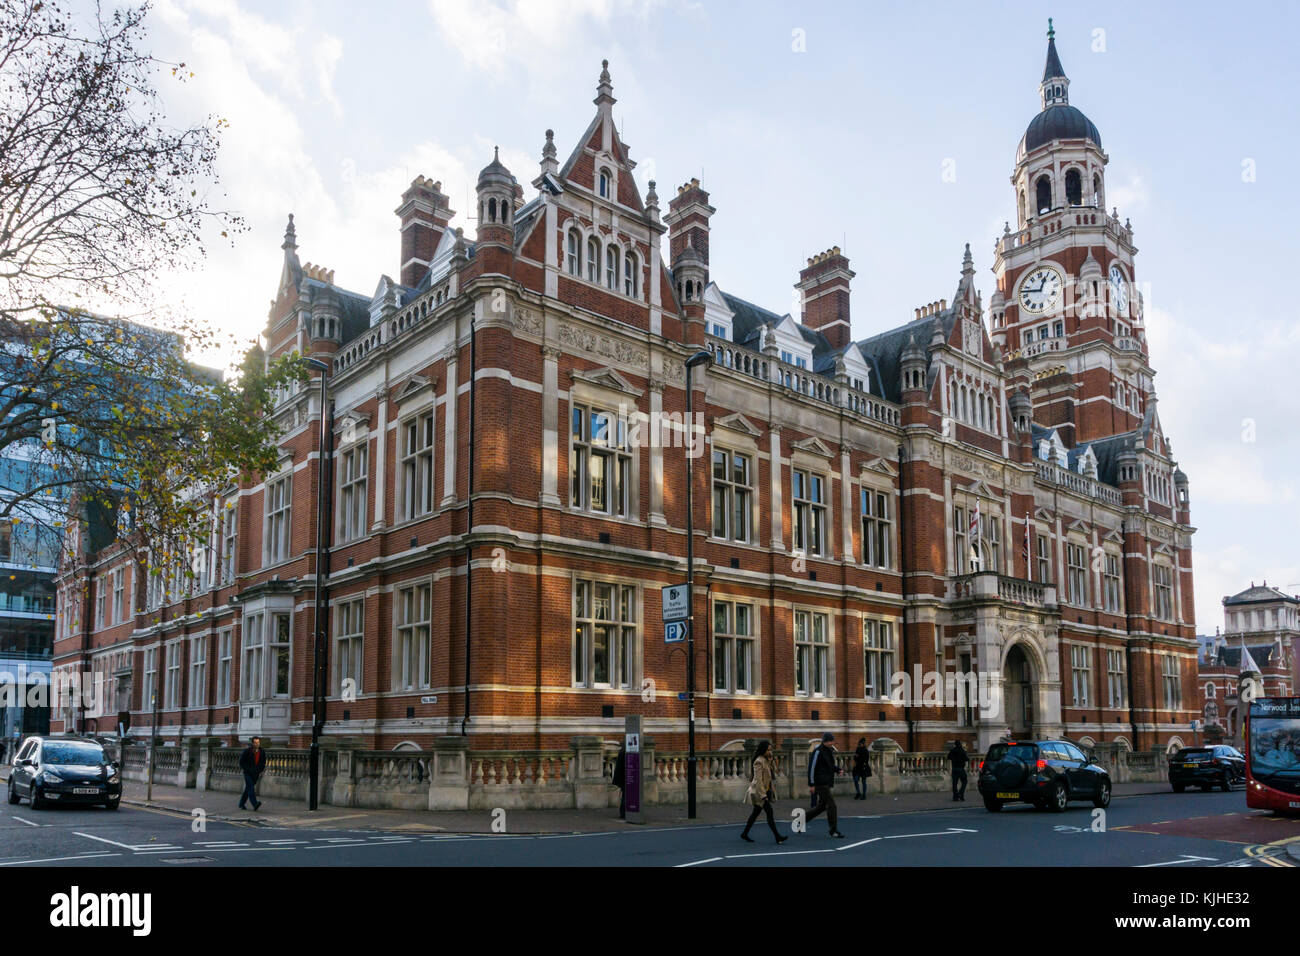 Croydon Town Hall - Stock Image